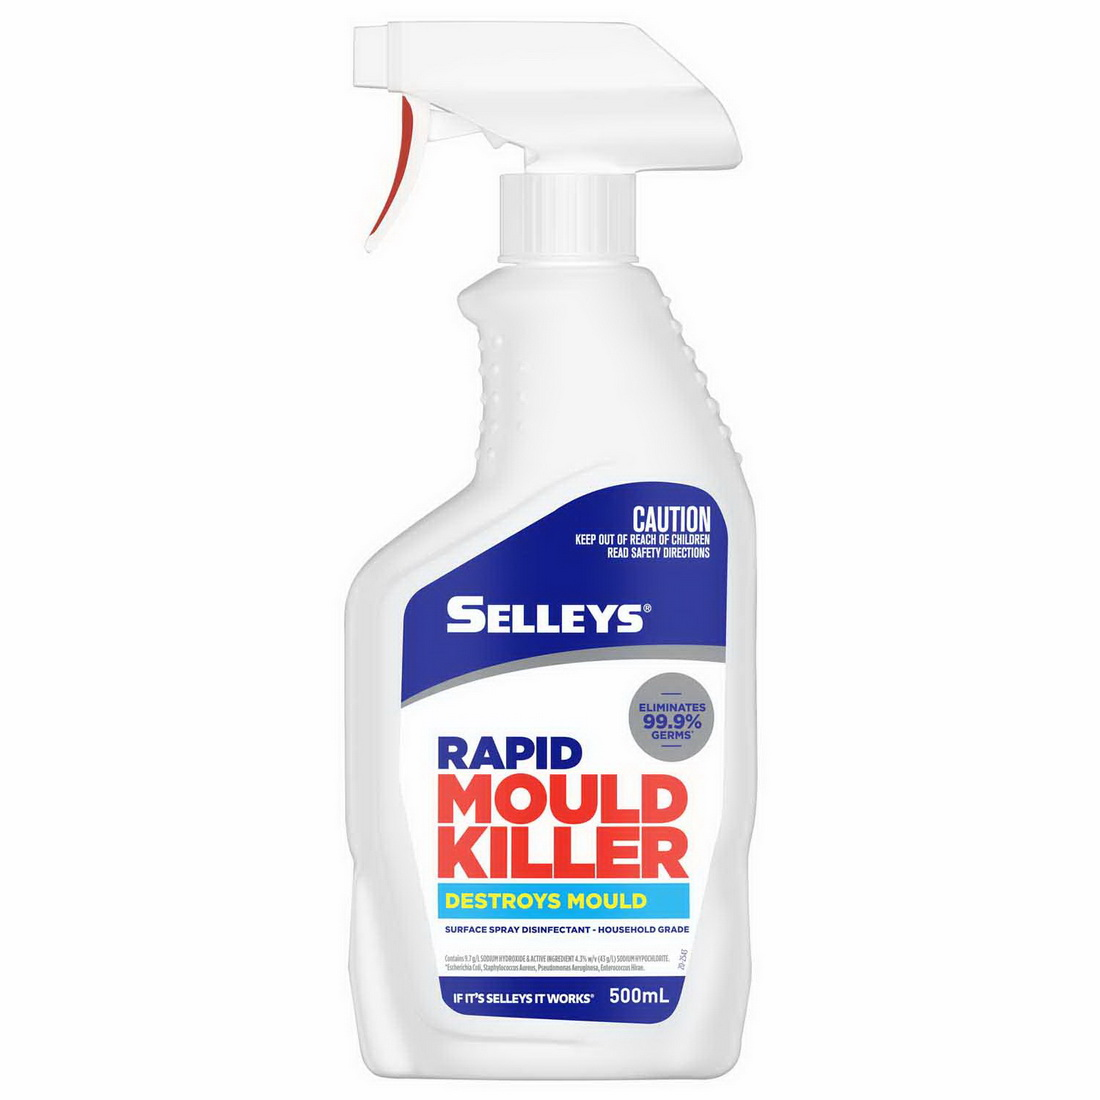 500mL Rapid Mould Killer